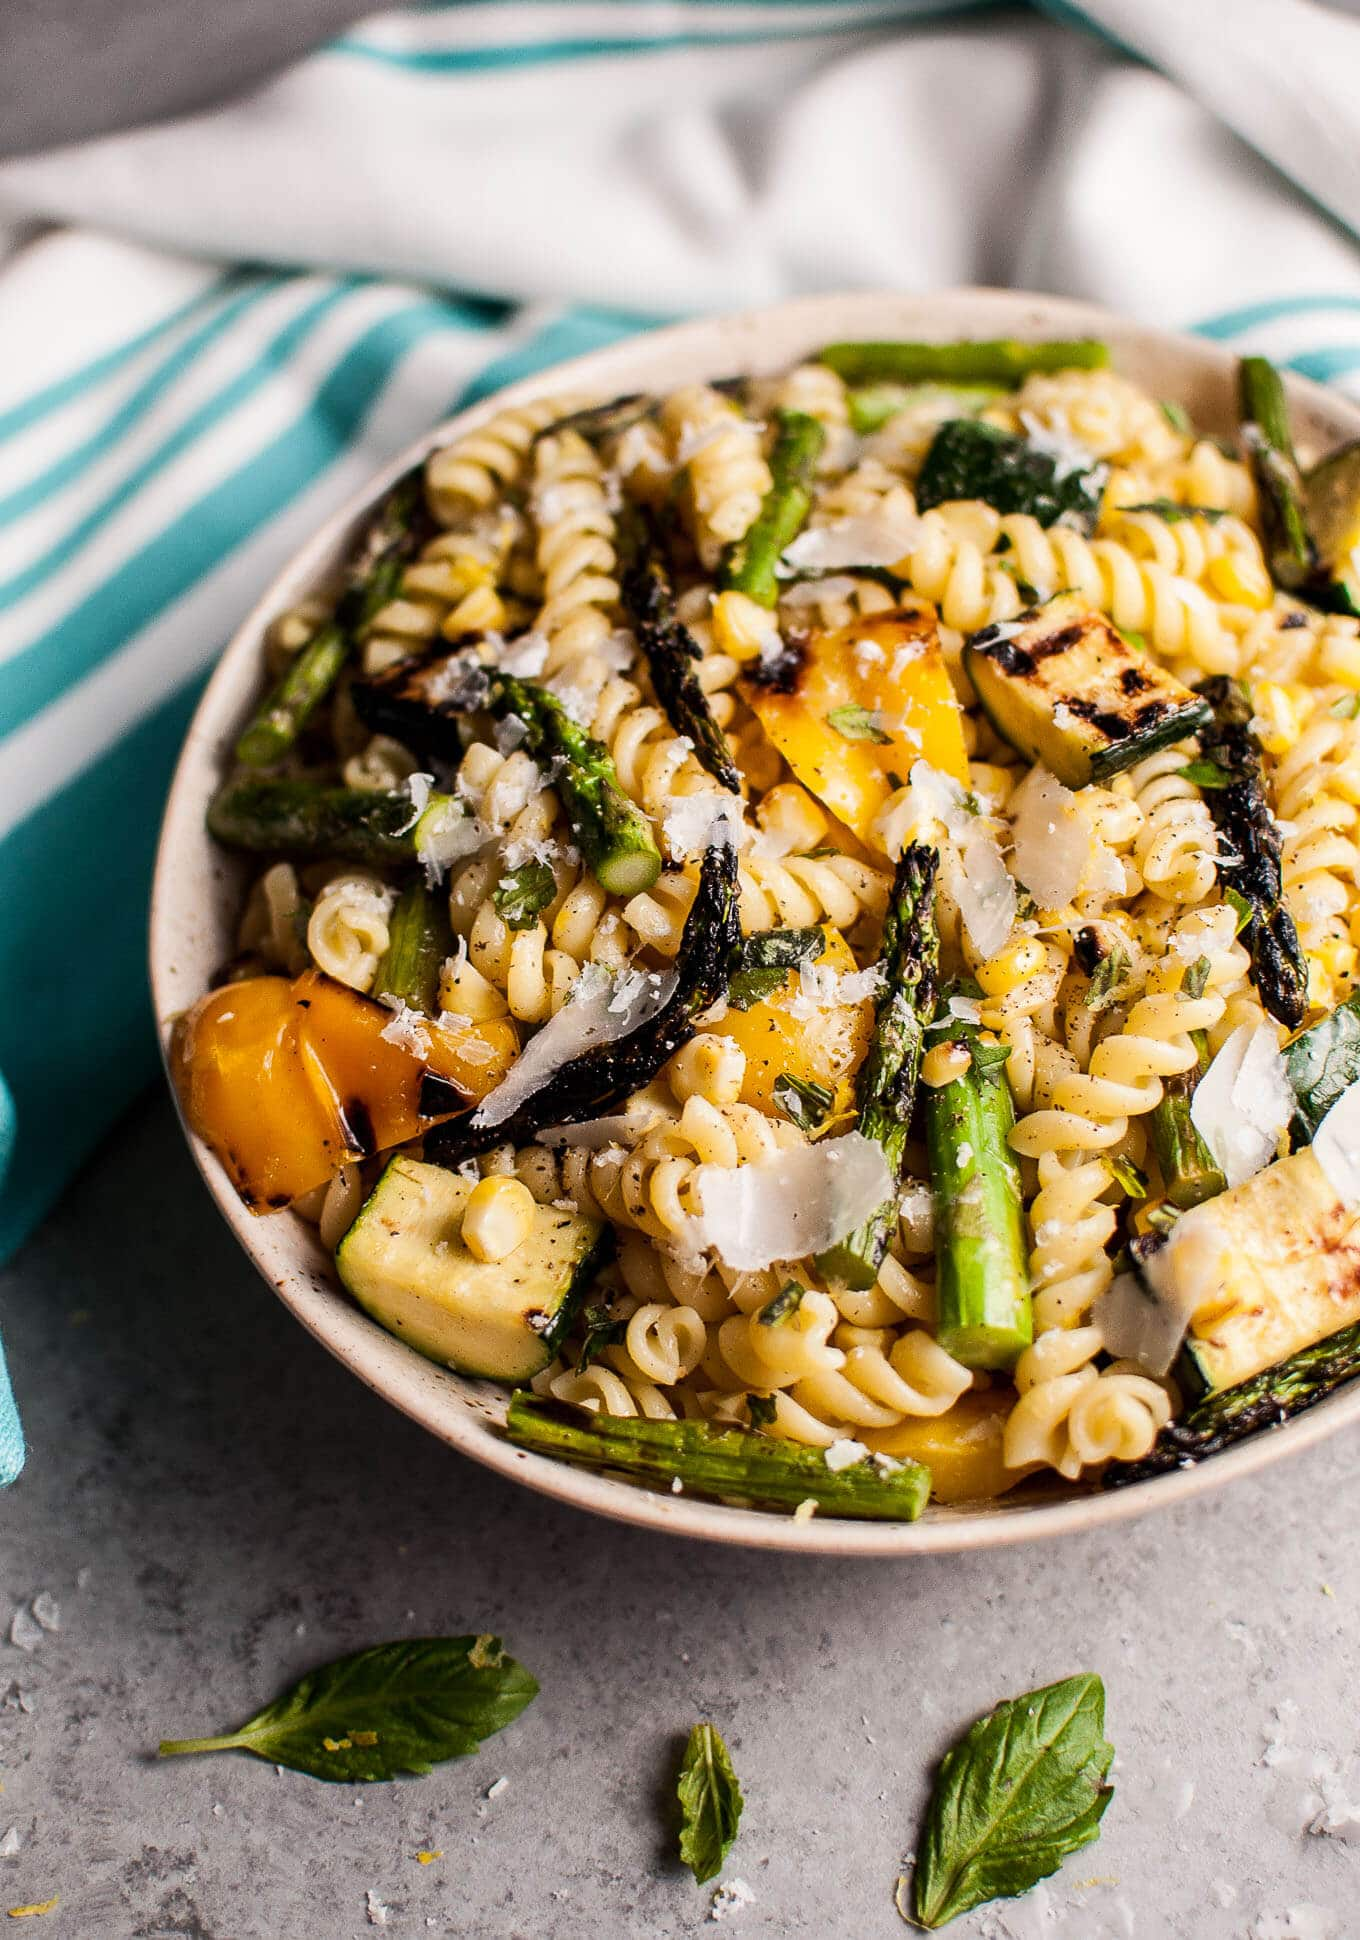 30 Days of Healthy Grilling Recipes - Grilled Summer Vegetable Pasta Salad via Salt and Lavender | http://www.roseclearfield.com